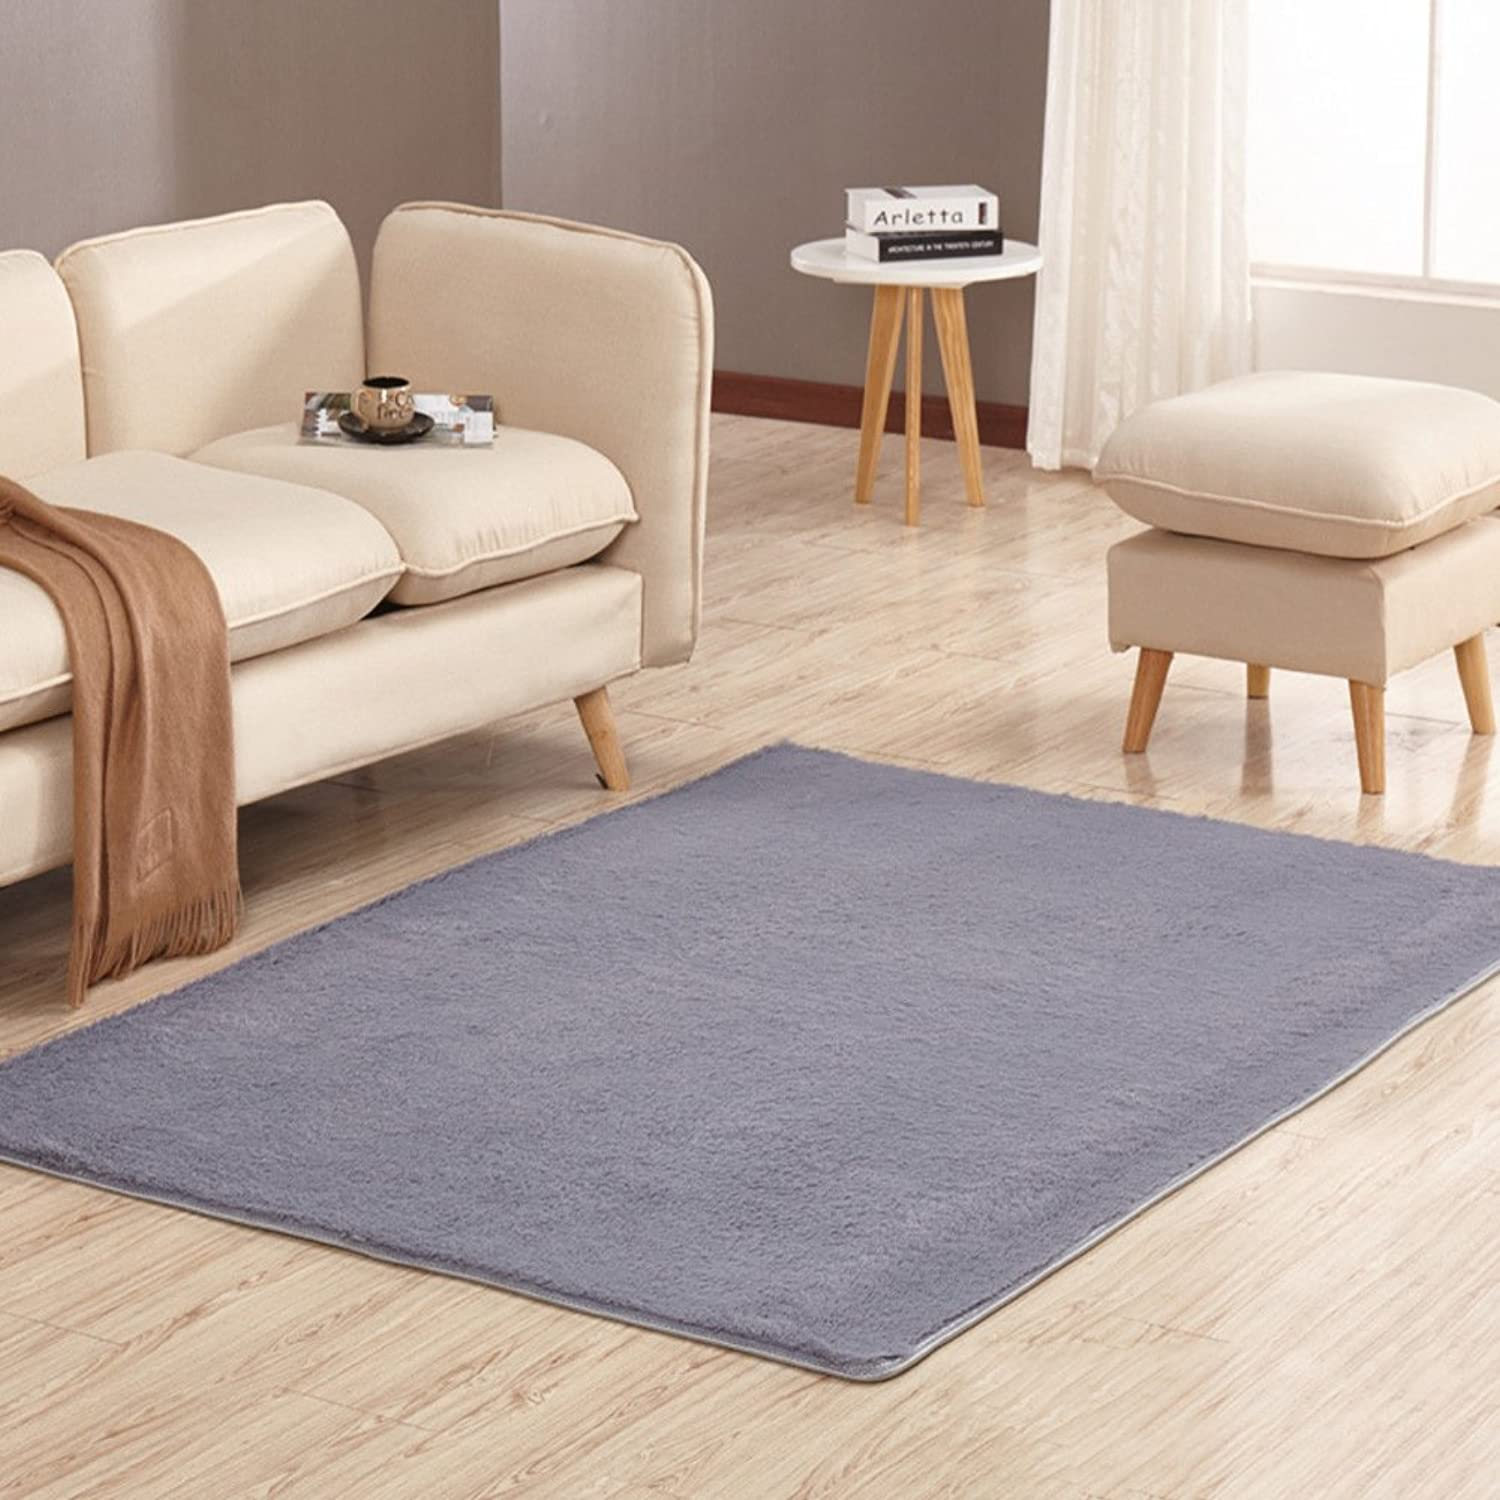 Solid color plush mat Living room Bedroom mats Anti-skidding Fastness Don't drop the mat.-F 100x160cm(39x63inch)